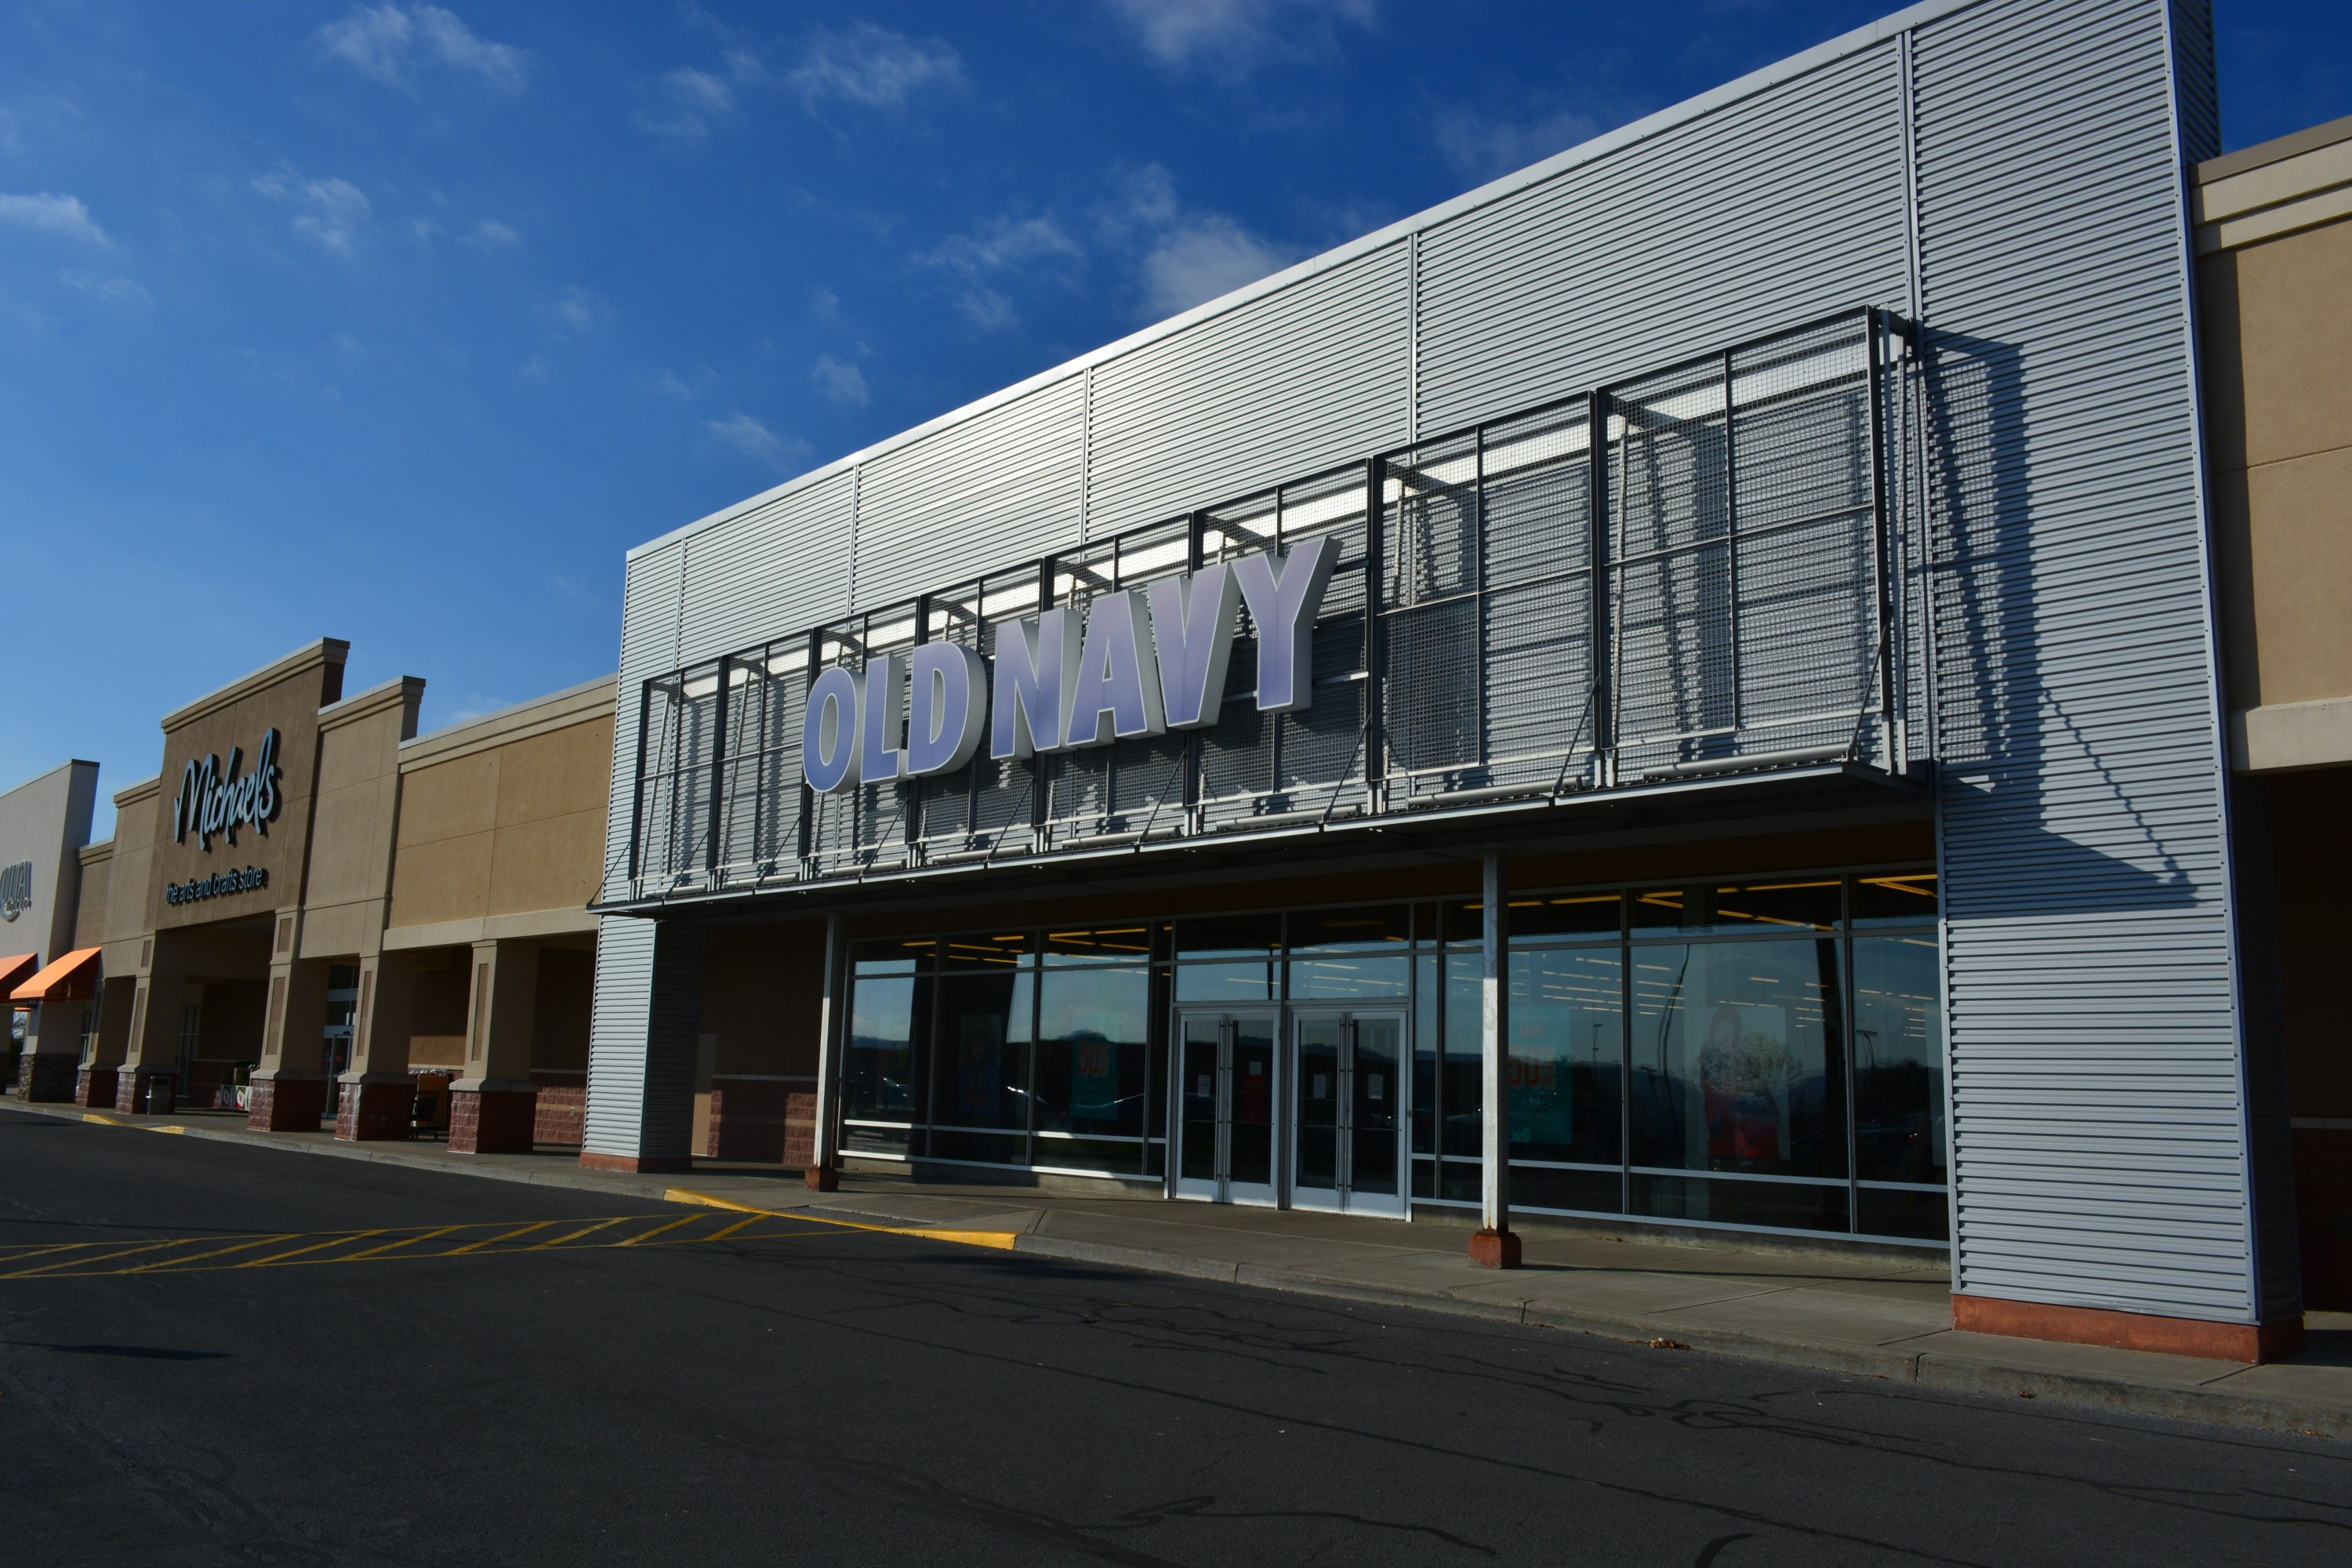 D OLD NAVY2 - Towne Center at Watertown – Watertown, NY